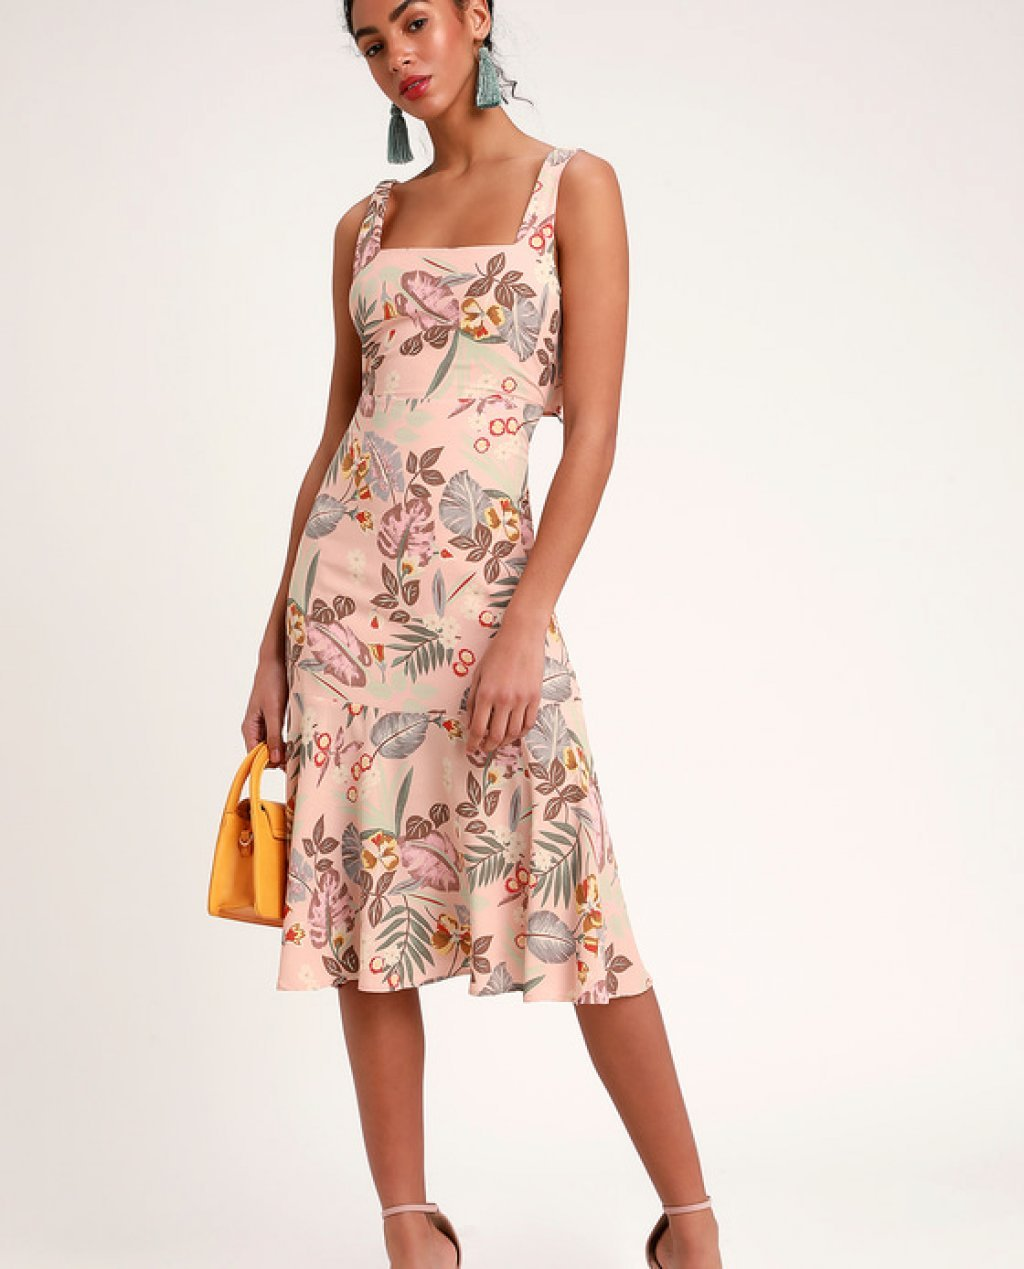 Island Sun Blush Pink Tropical Print Tie-Back Midi Dress